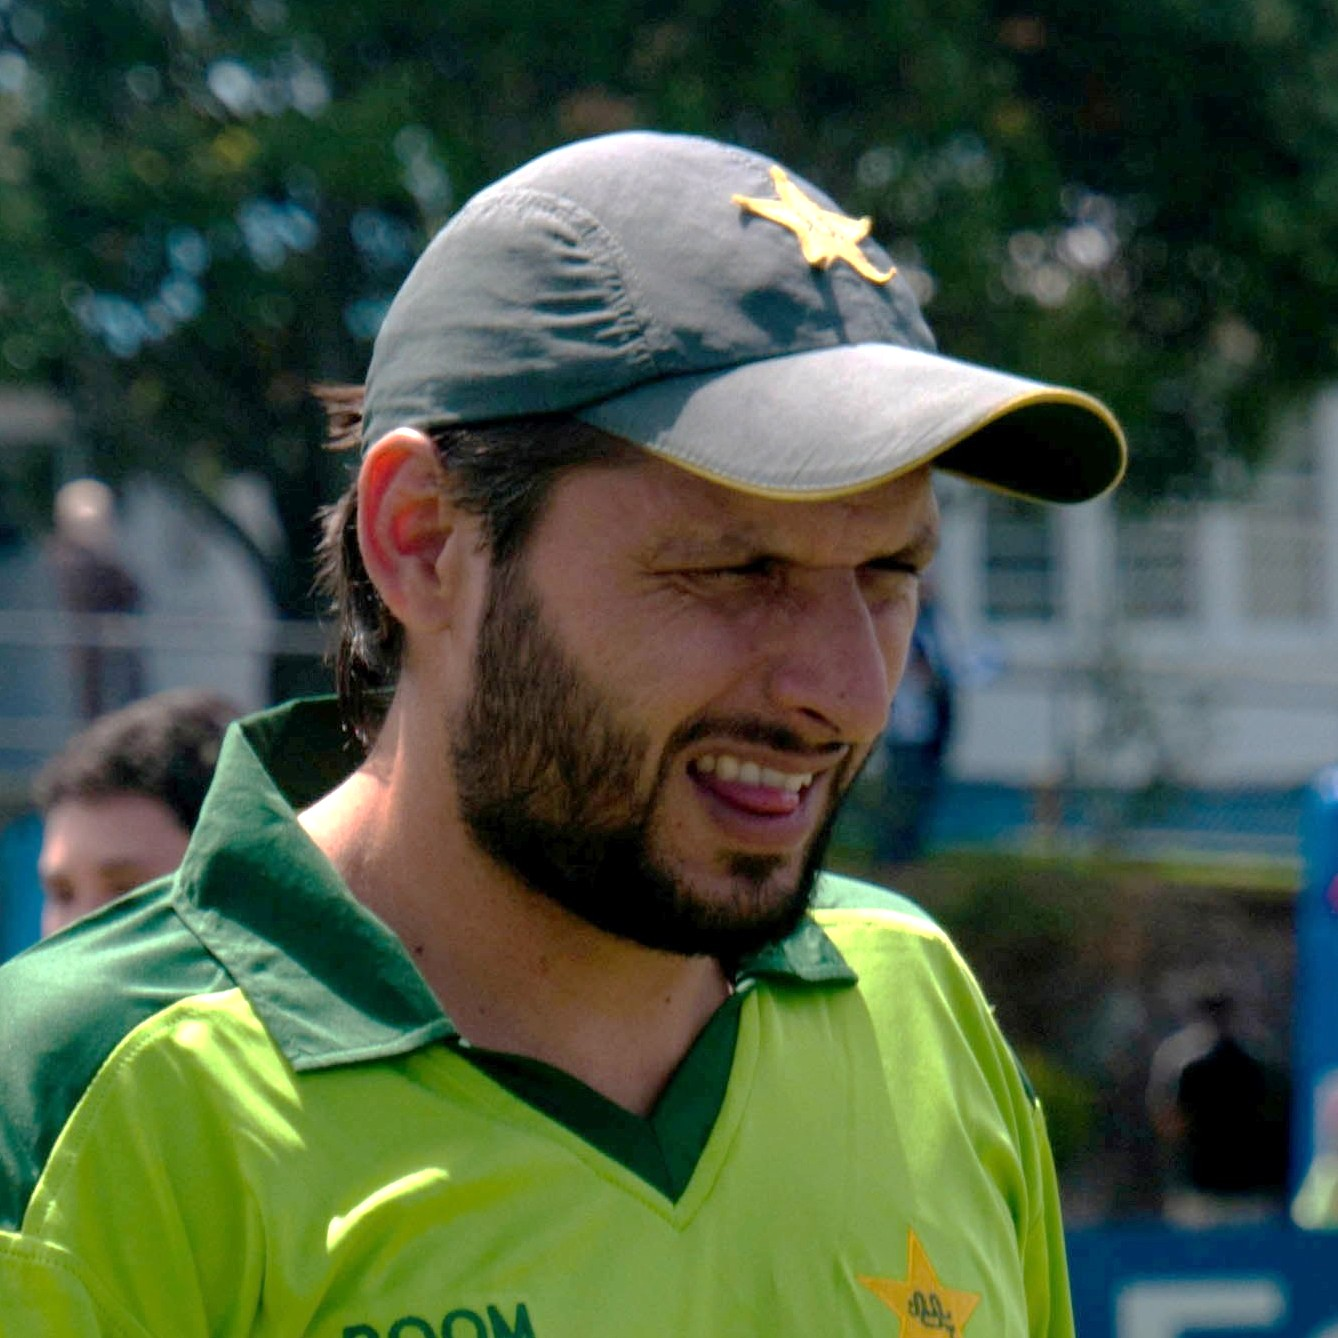 India vs Australia: Virat Kohli needs to improve as a captain - Shahid Afridi